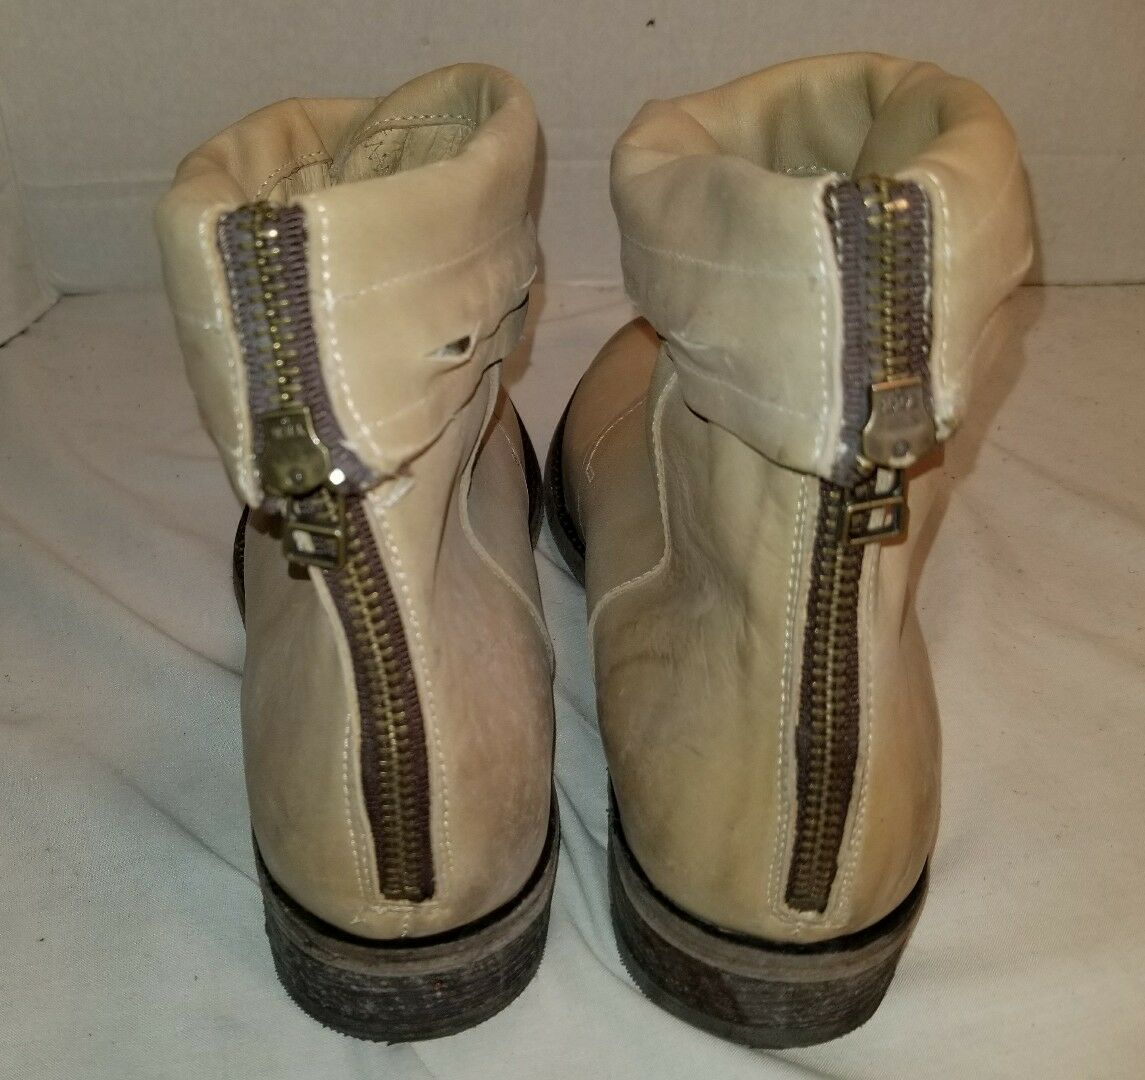 NEW FREE PEOPLE FARYLROBIN ANKLE SPRING VALLEY NATURAL LEATHER ANKLE FARYLROBIN Stiefel US 8 762aa4